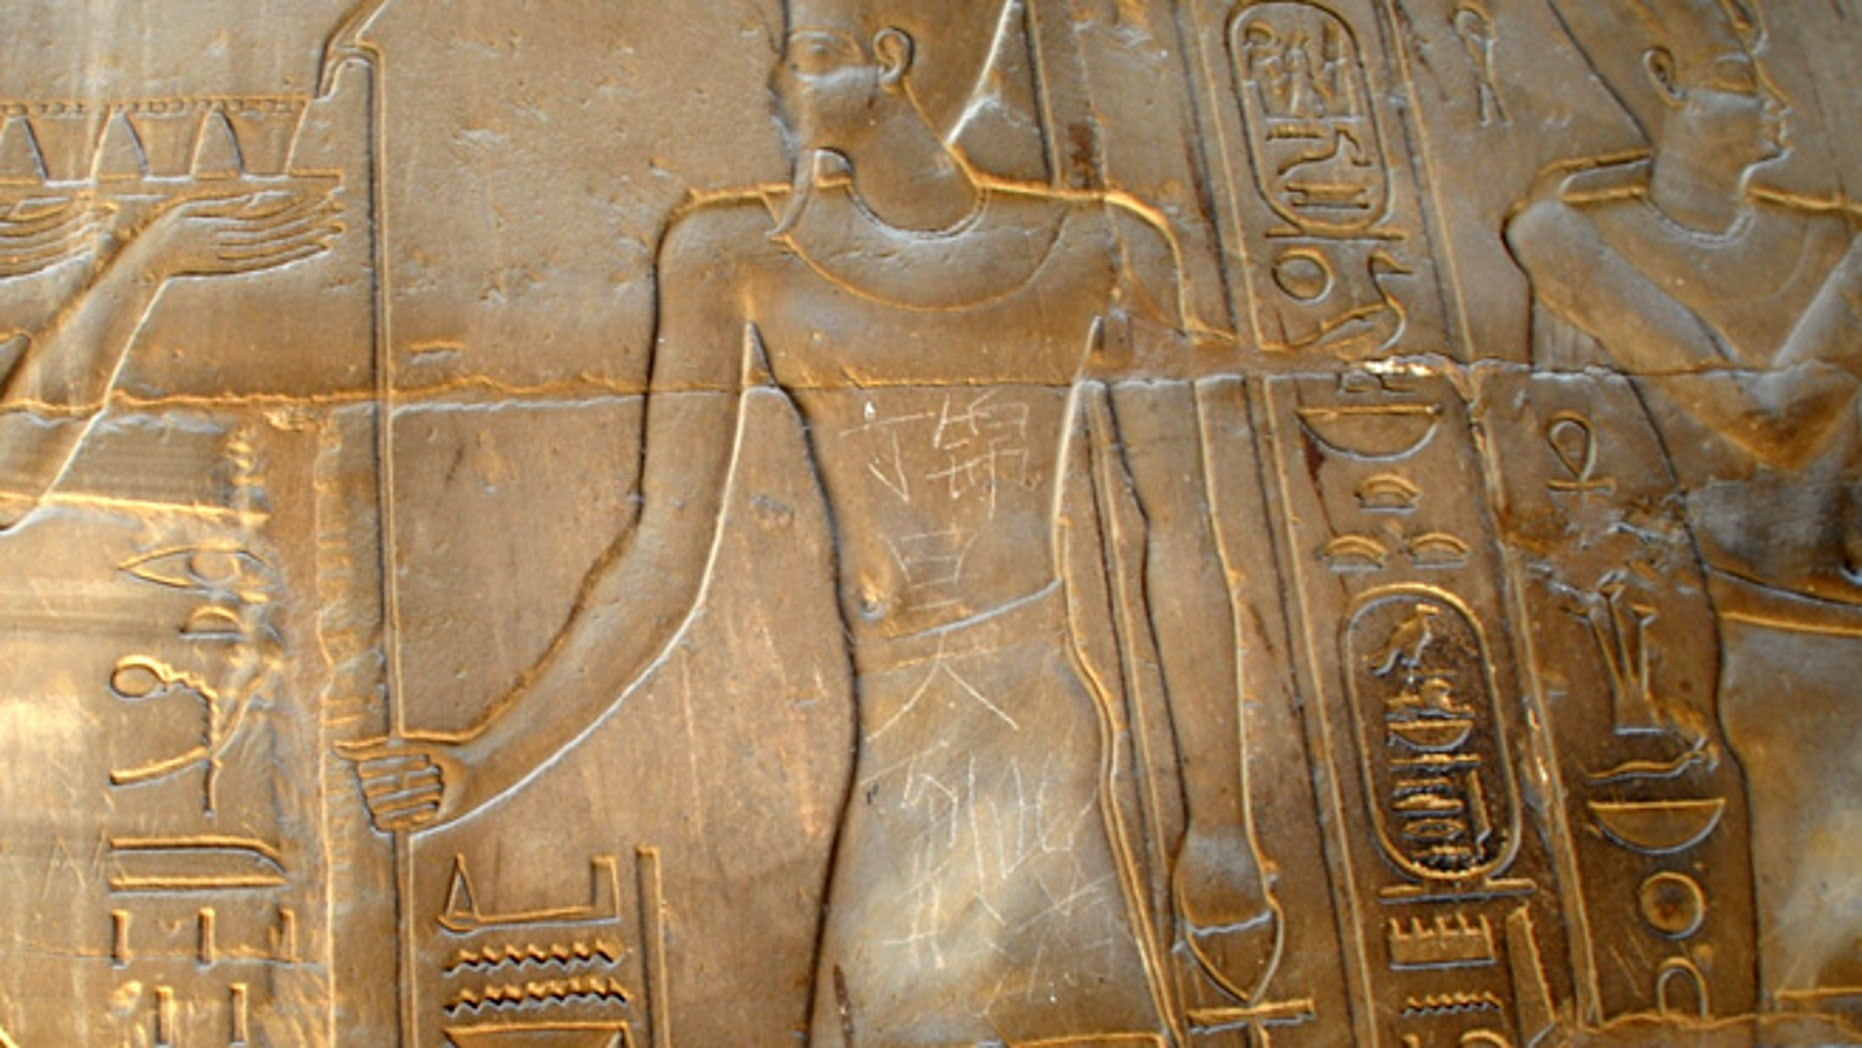 """May 6, 2013:  In this photo, the Chinese words """"Ding Jinhao visited here"""" is seen on bas-relief in the 3,500-year-old Luxor temple in Luxor, Egypt."""